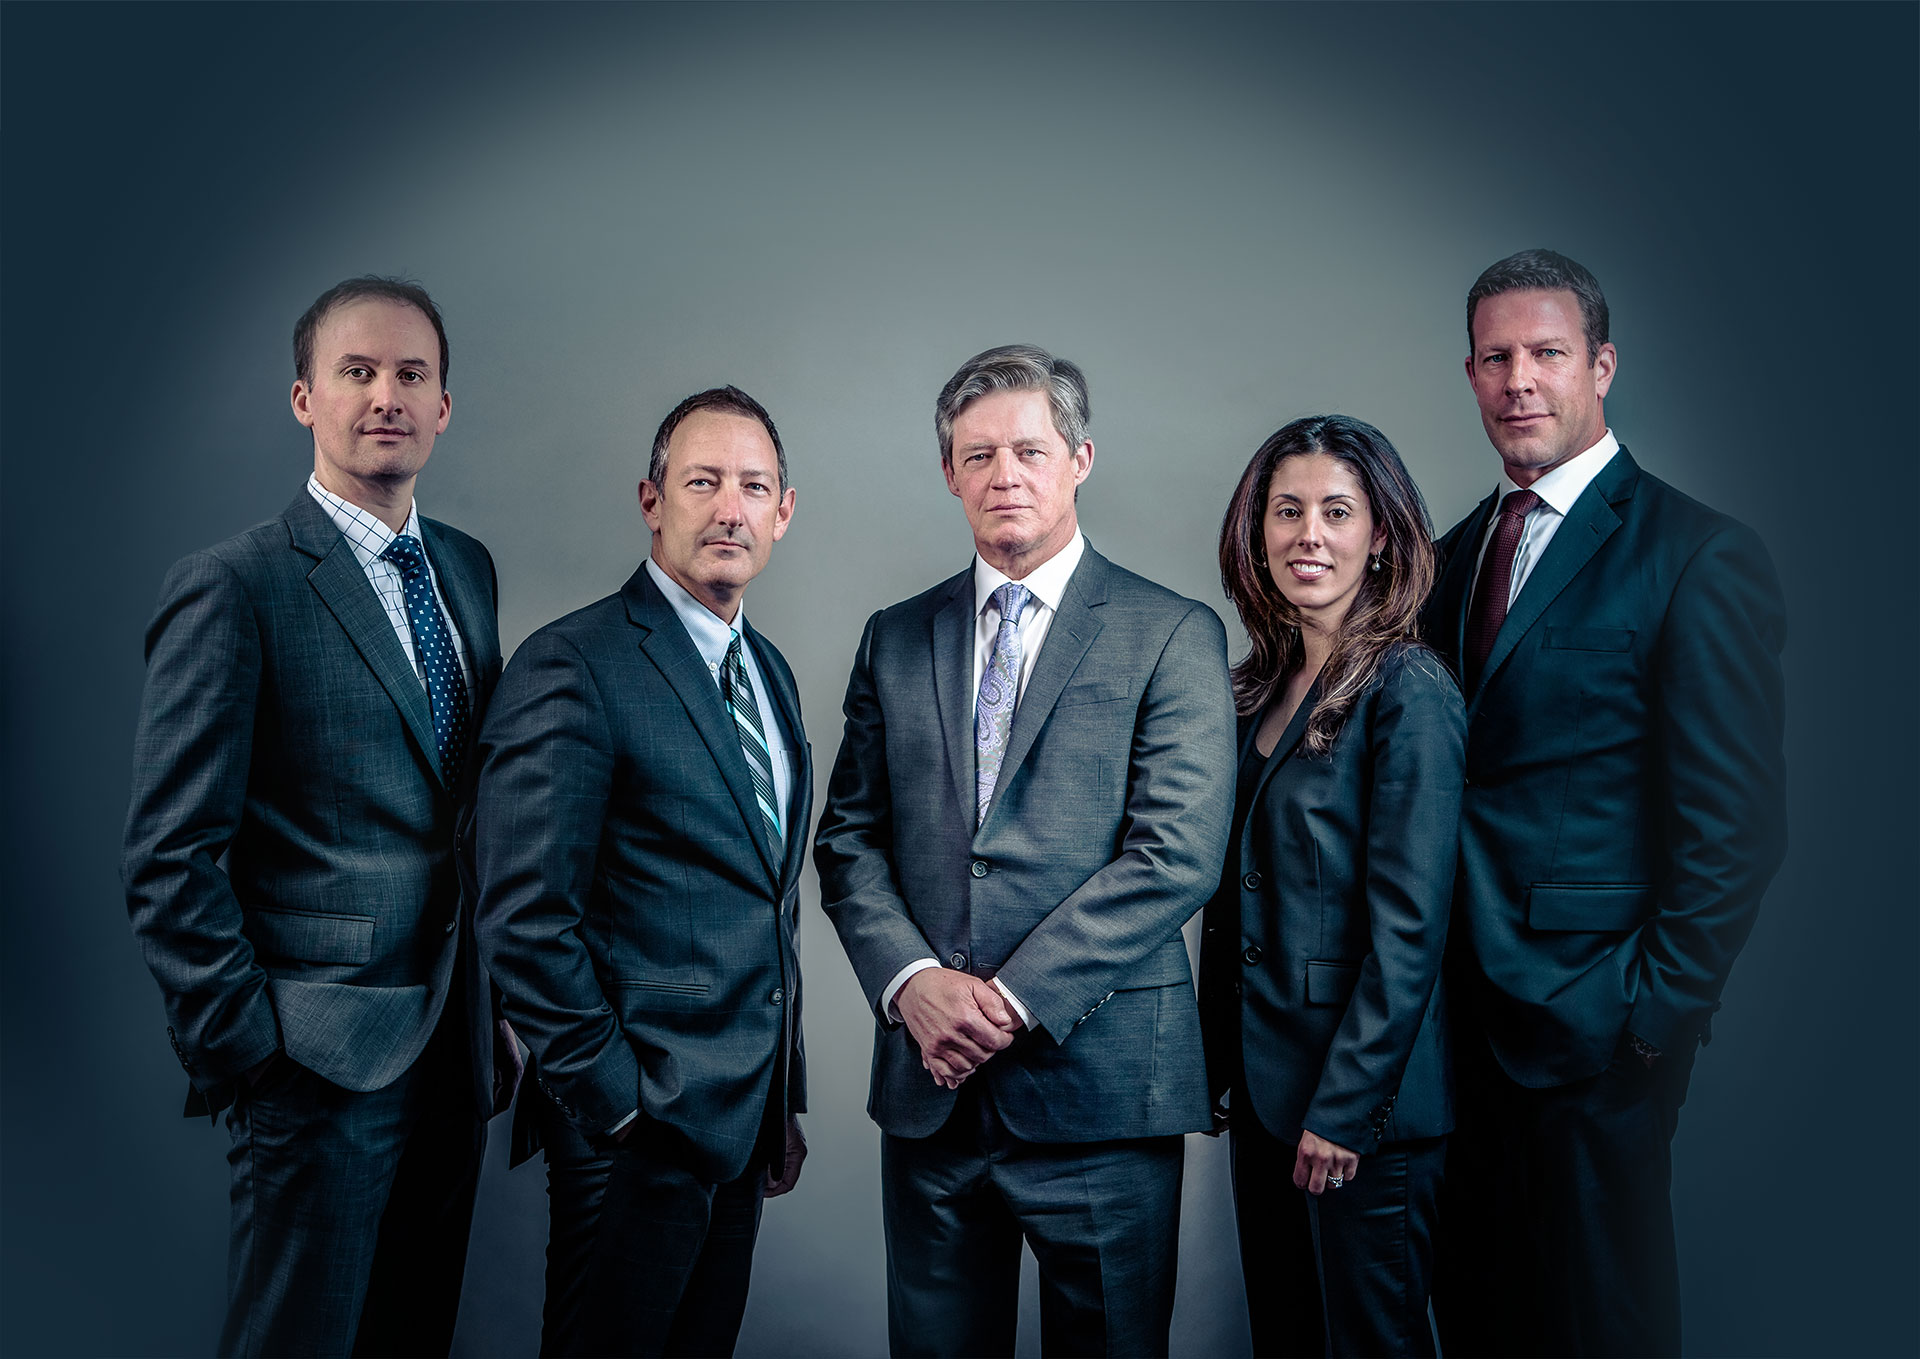 We are your <br>legal advisors